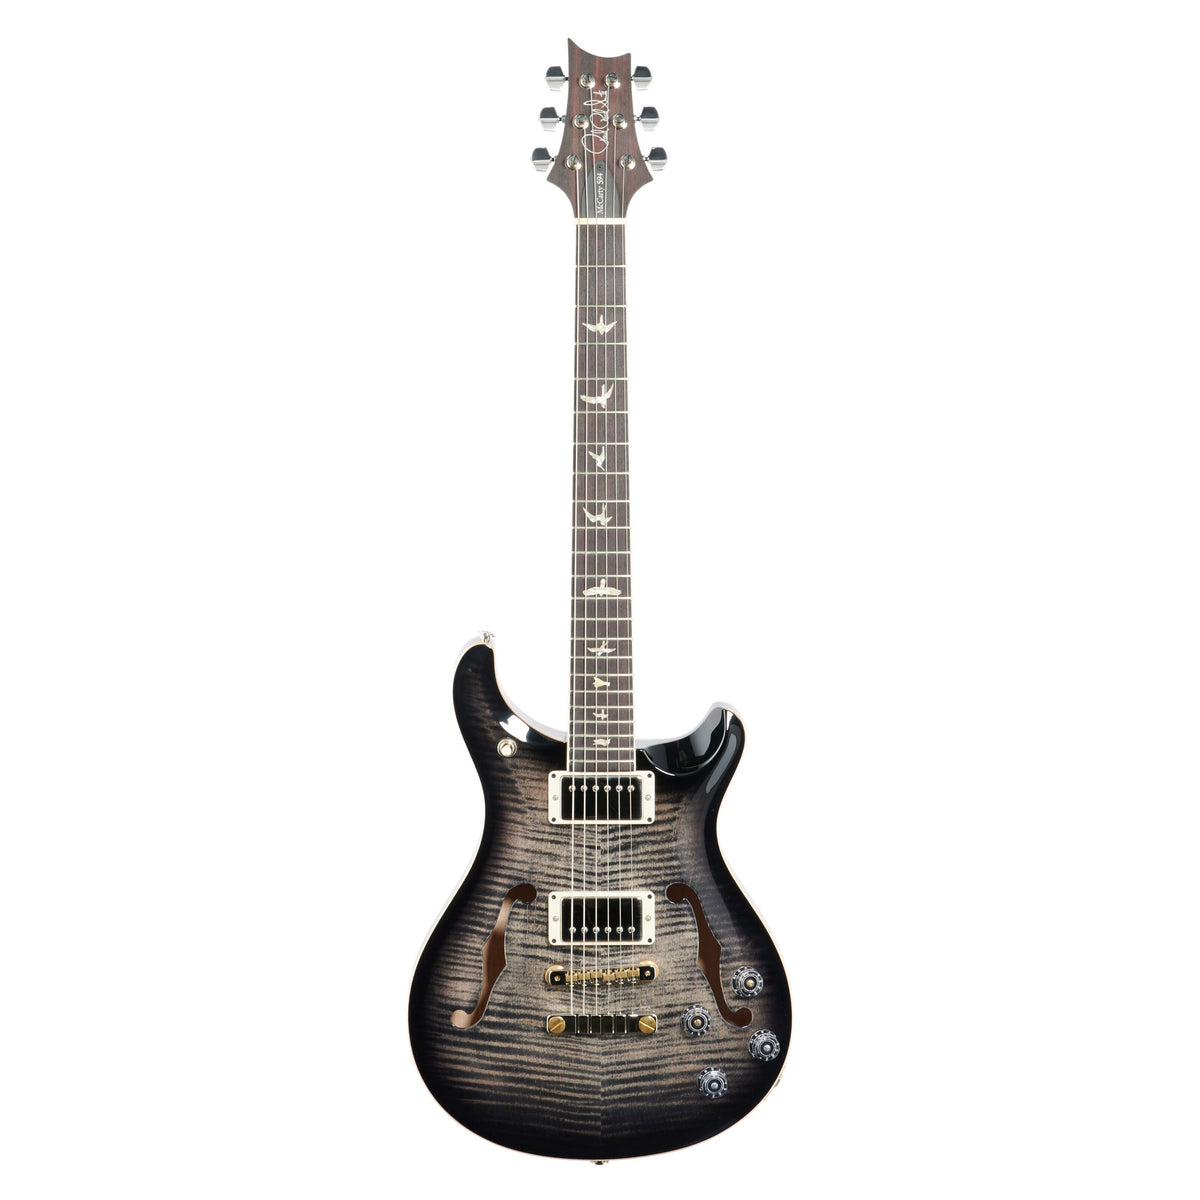 PRS Paul Reed Smith McCarty 594 Hollowbody II 10 Top Electric Guitar (with Case), Charcoal Burst